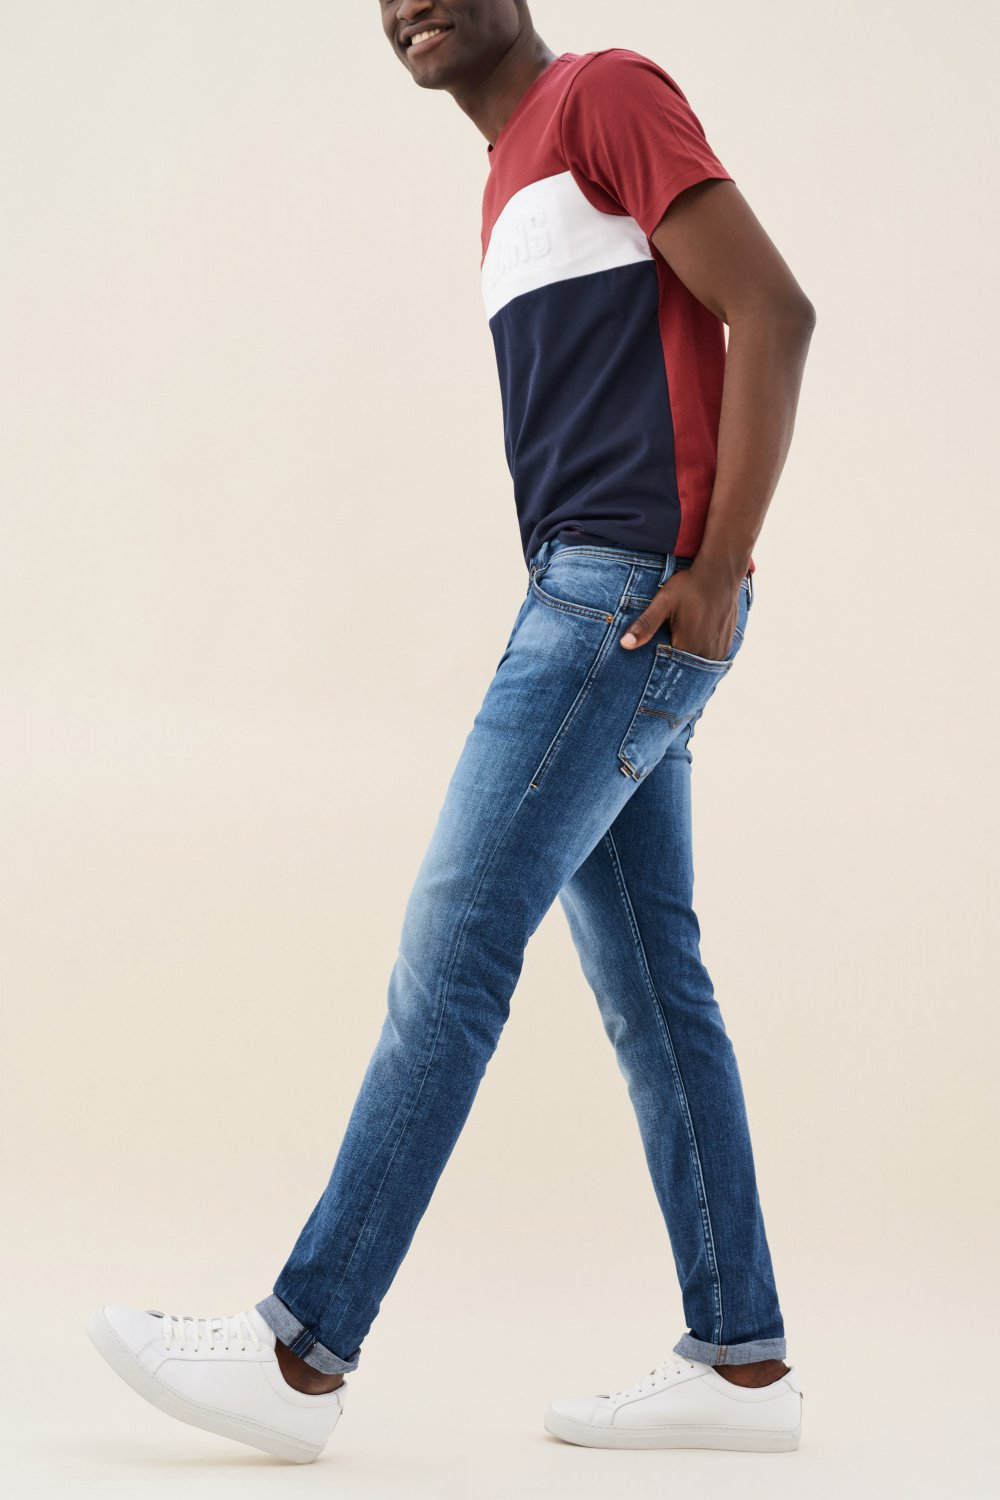 Slender slim jeans in light colour - Salsa